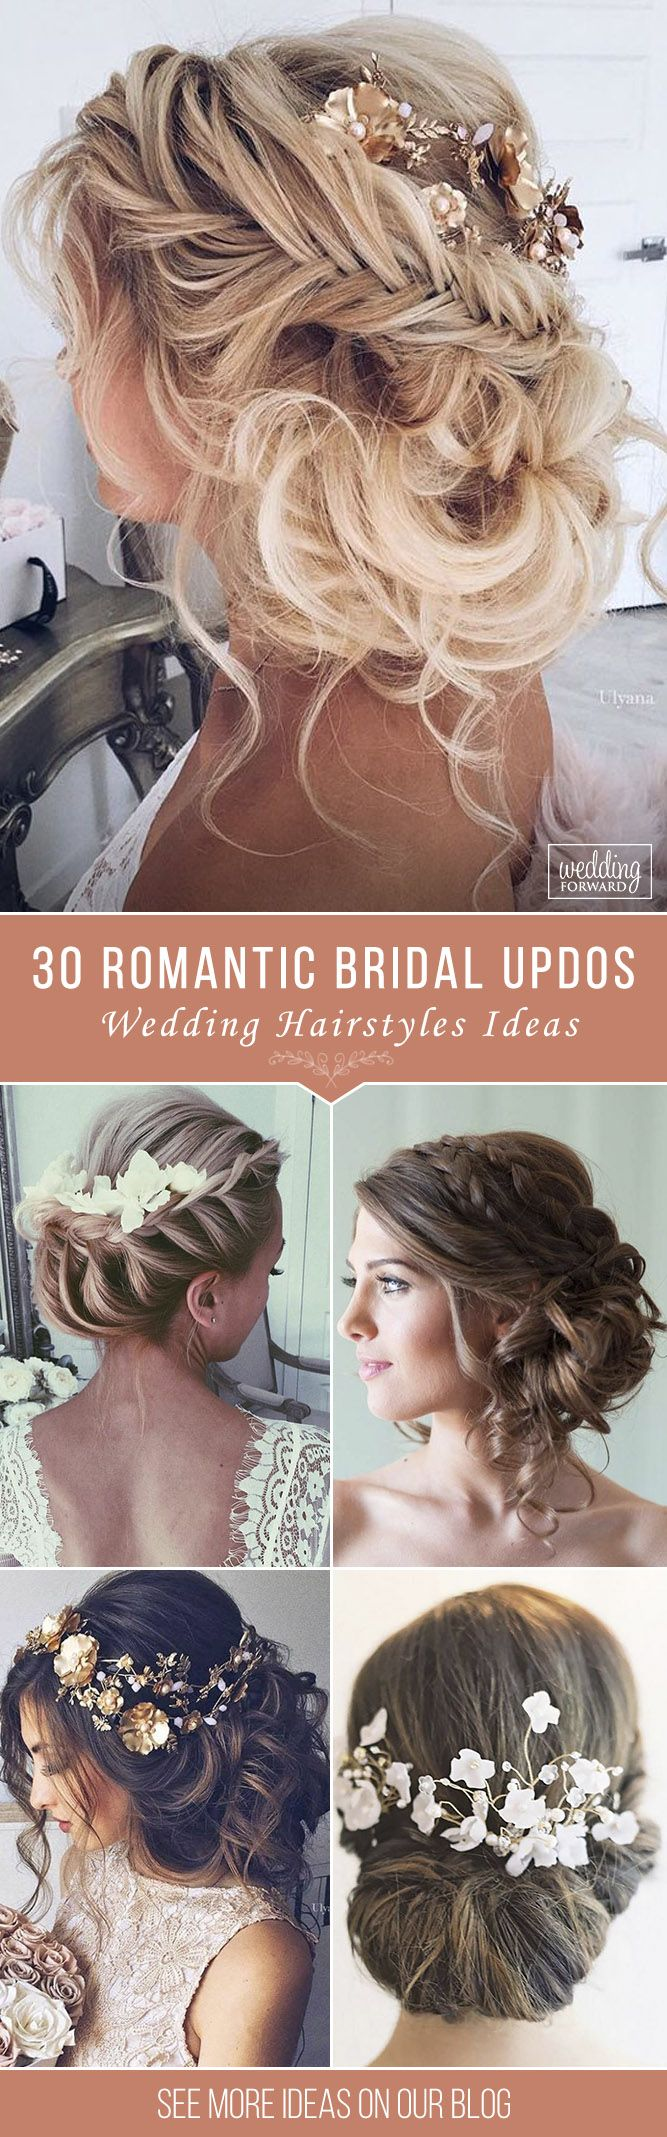 30 Wedding Hairstyles - Romantic Bridal Updos ❤ From high-volume braids to sof...